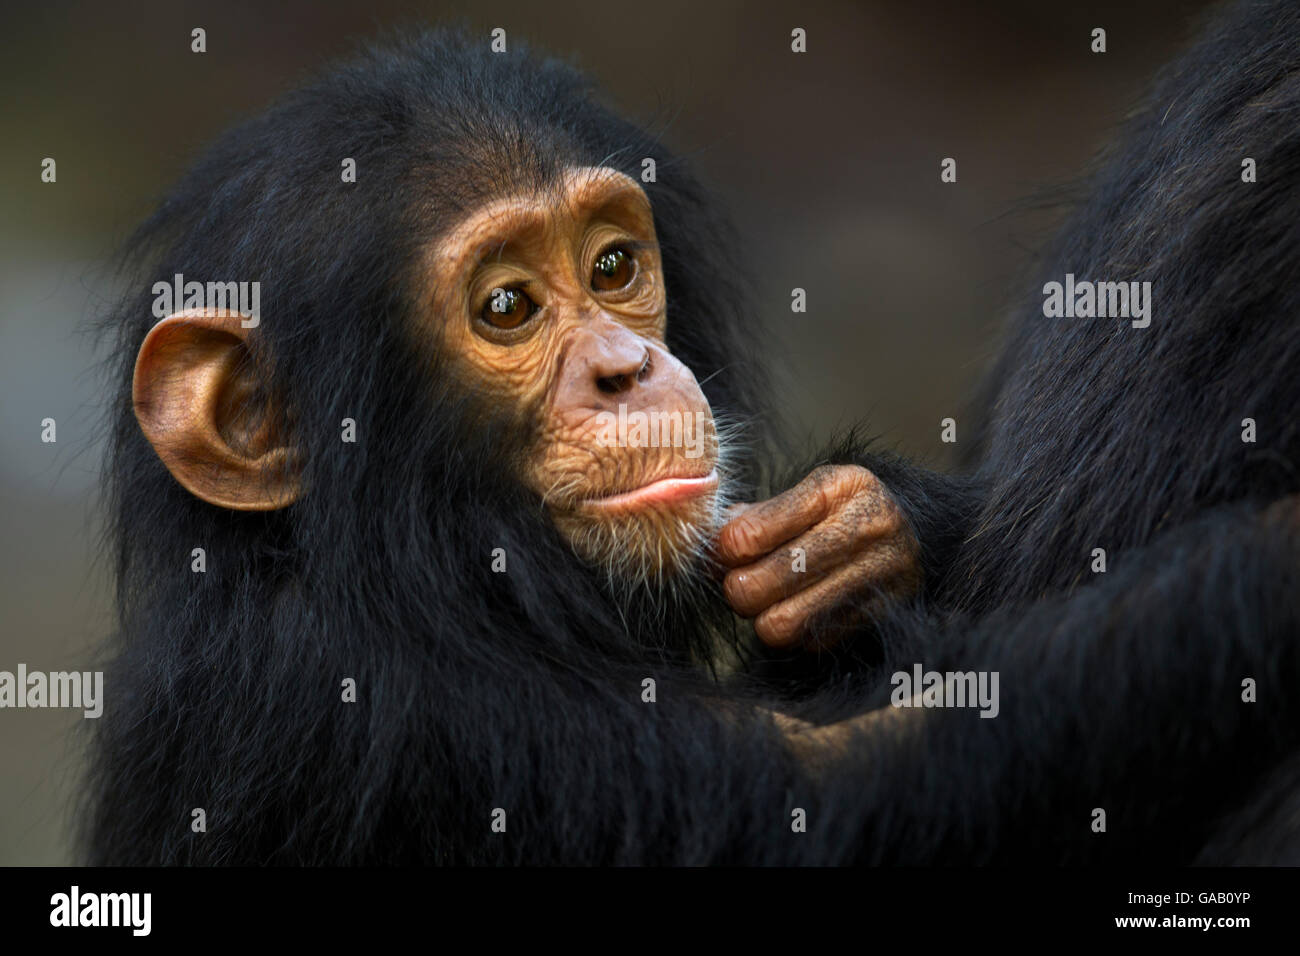 Eastern chimpanzee (Pan troglodytes schweinfurtheii) infant male 'Gizmo' aged 2 years, portrait. Gombe National - Stock Image